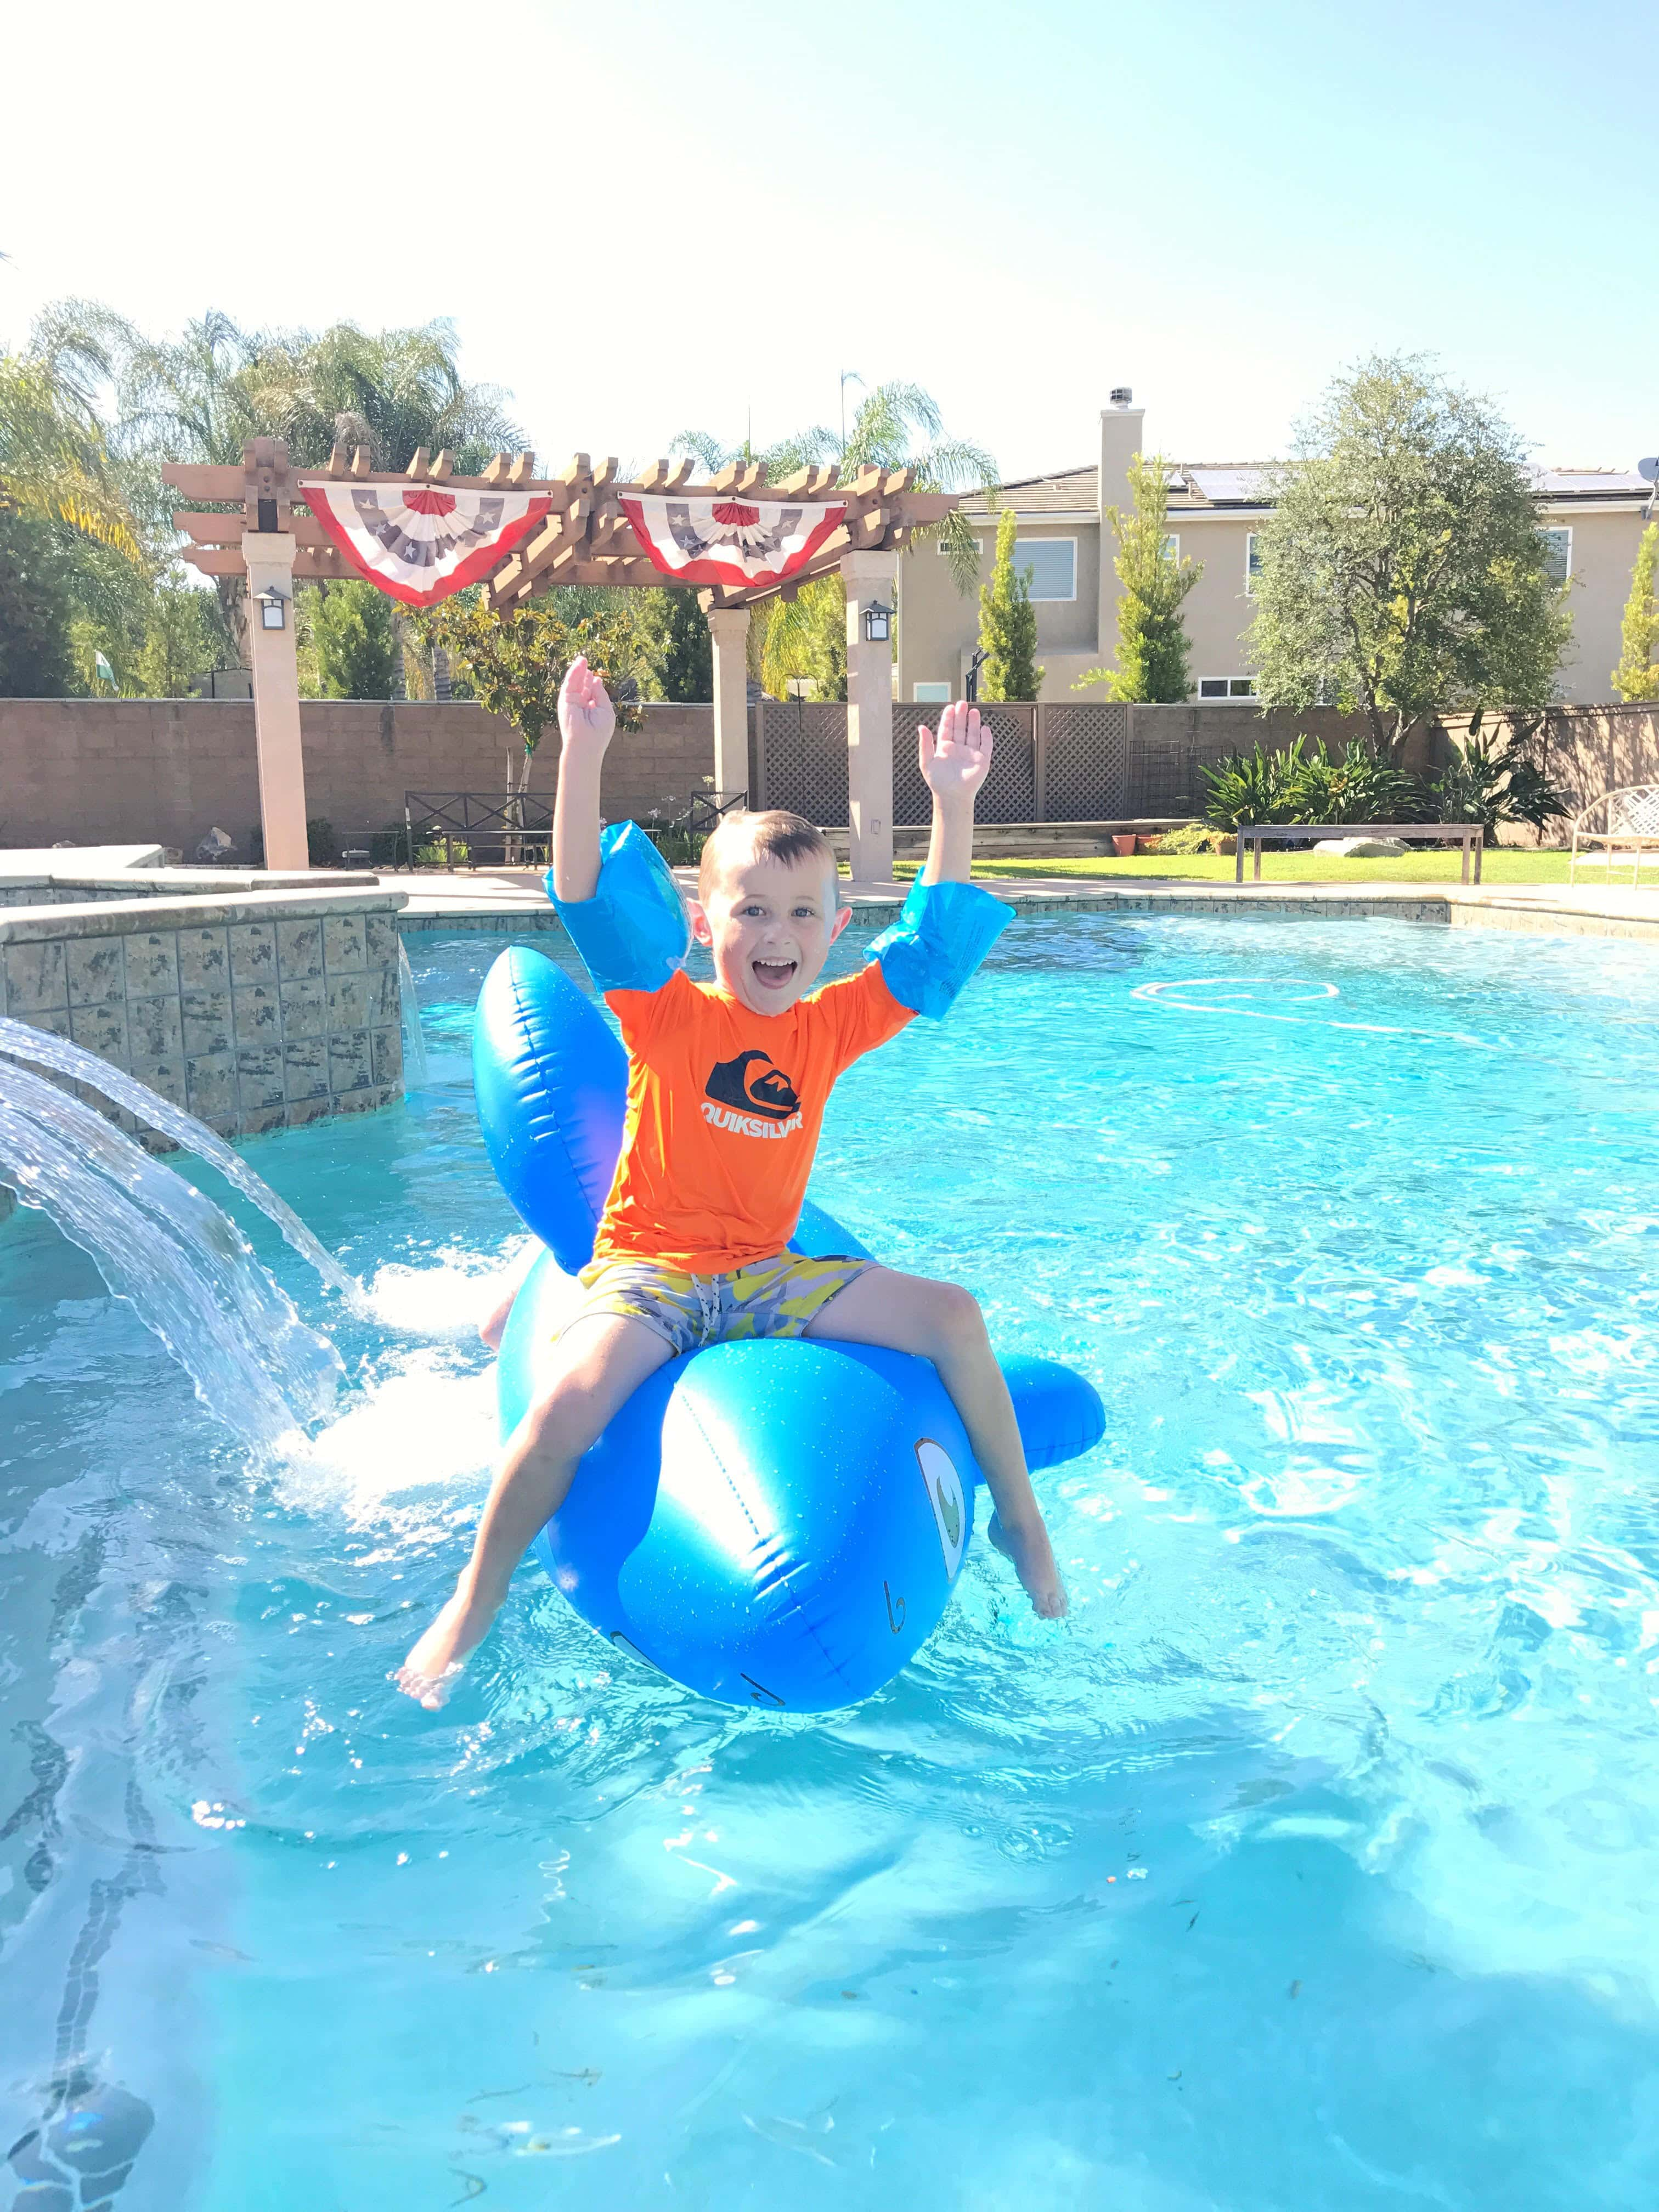 6 best pool floats you need this summer that won 39 t break. Black Bedroom Furniture Sets. Home Design Ideas